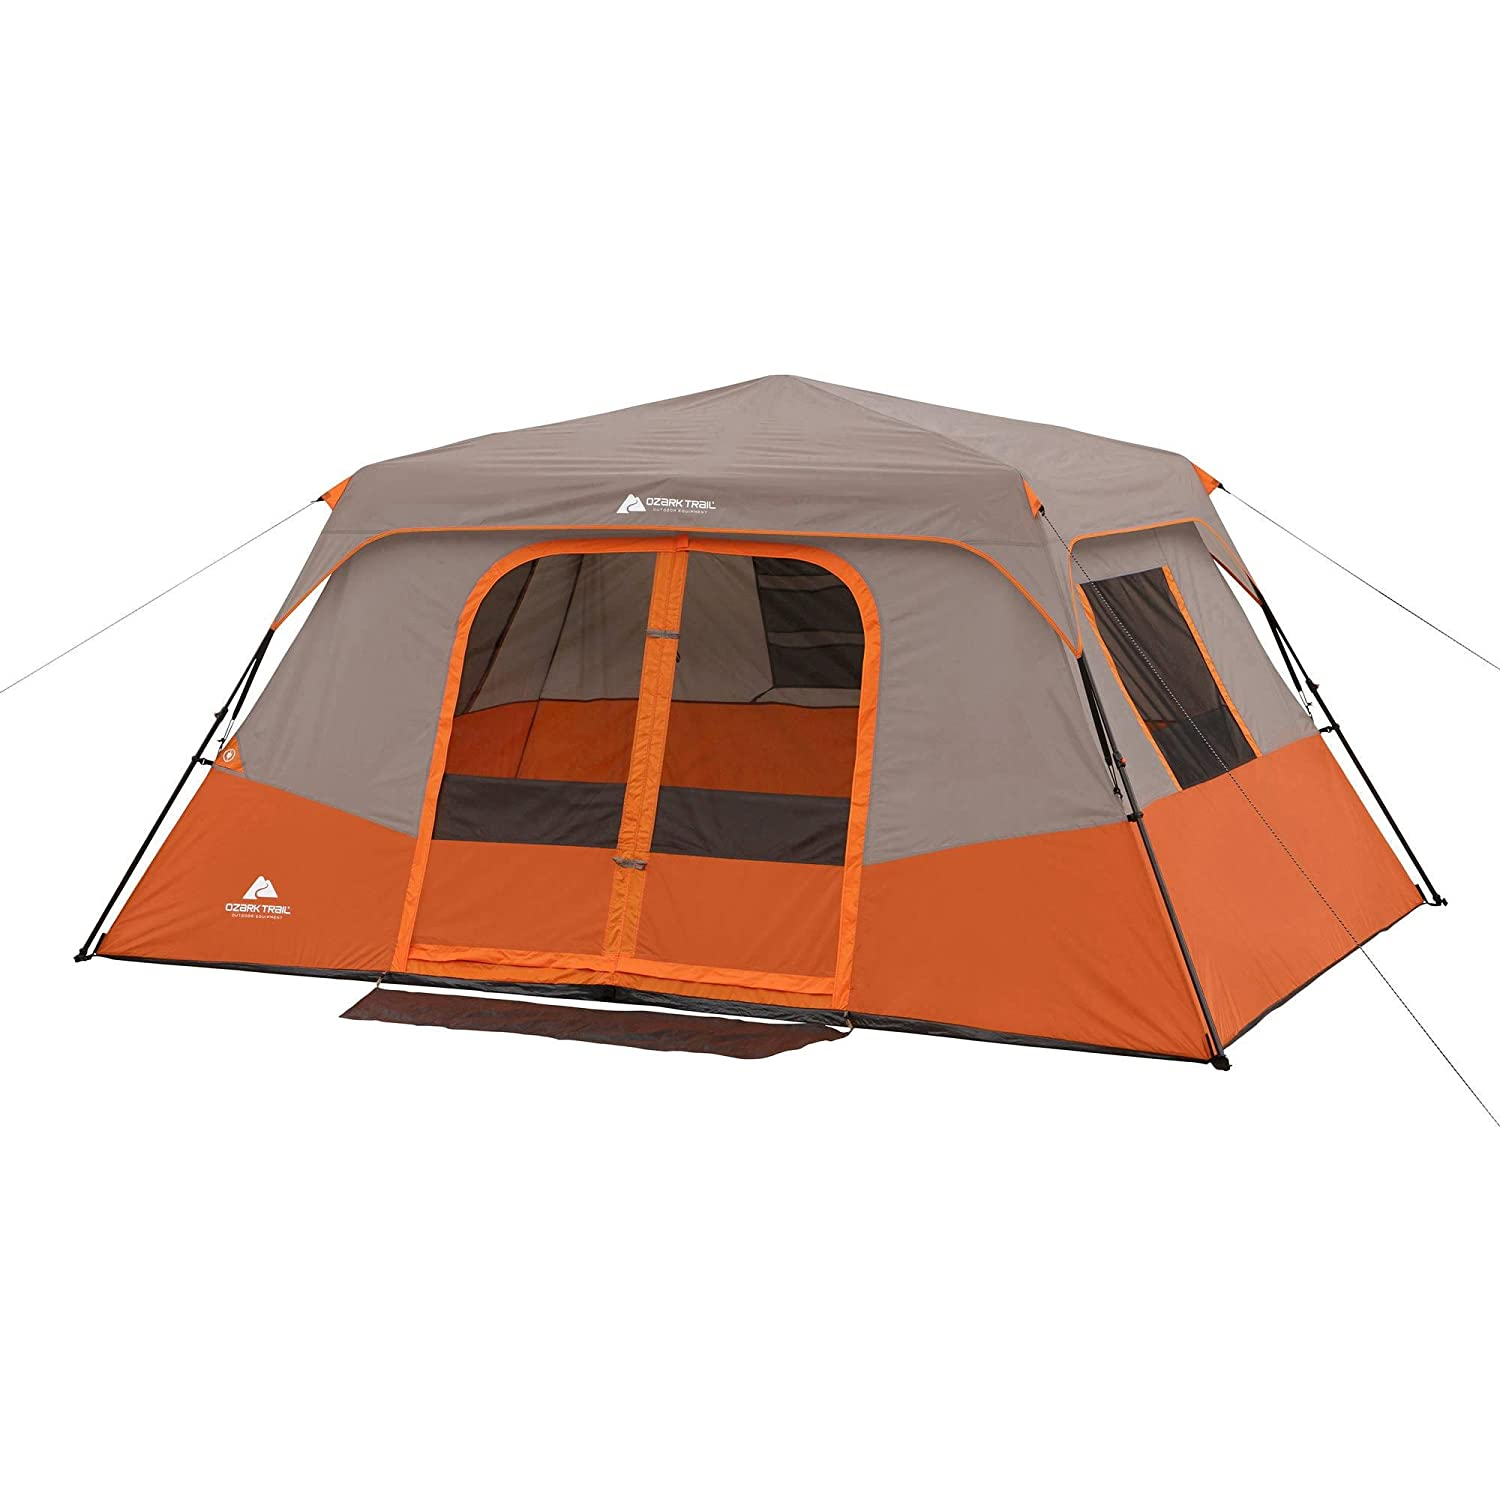 Ozark Trail Tent Reviews How To Pick The Best Camping